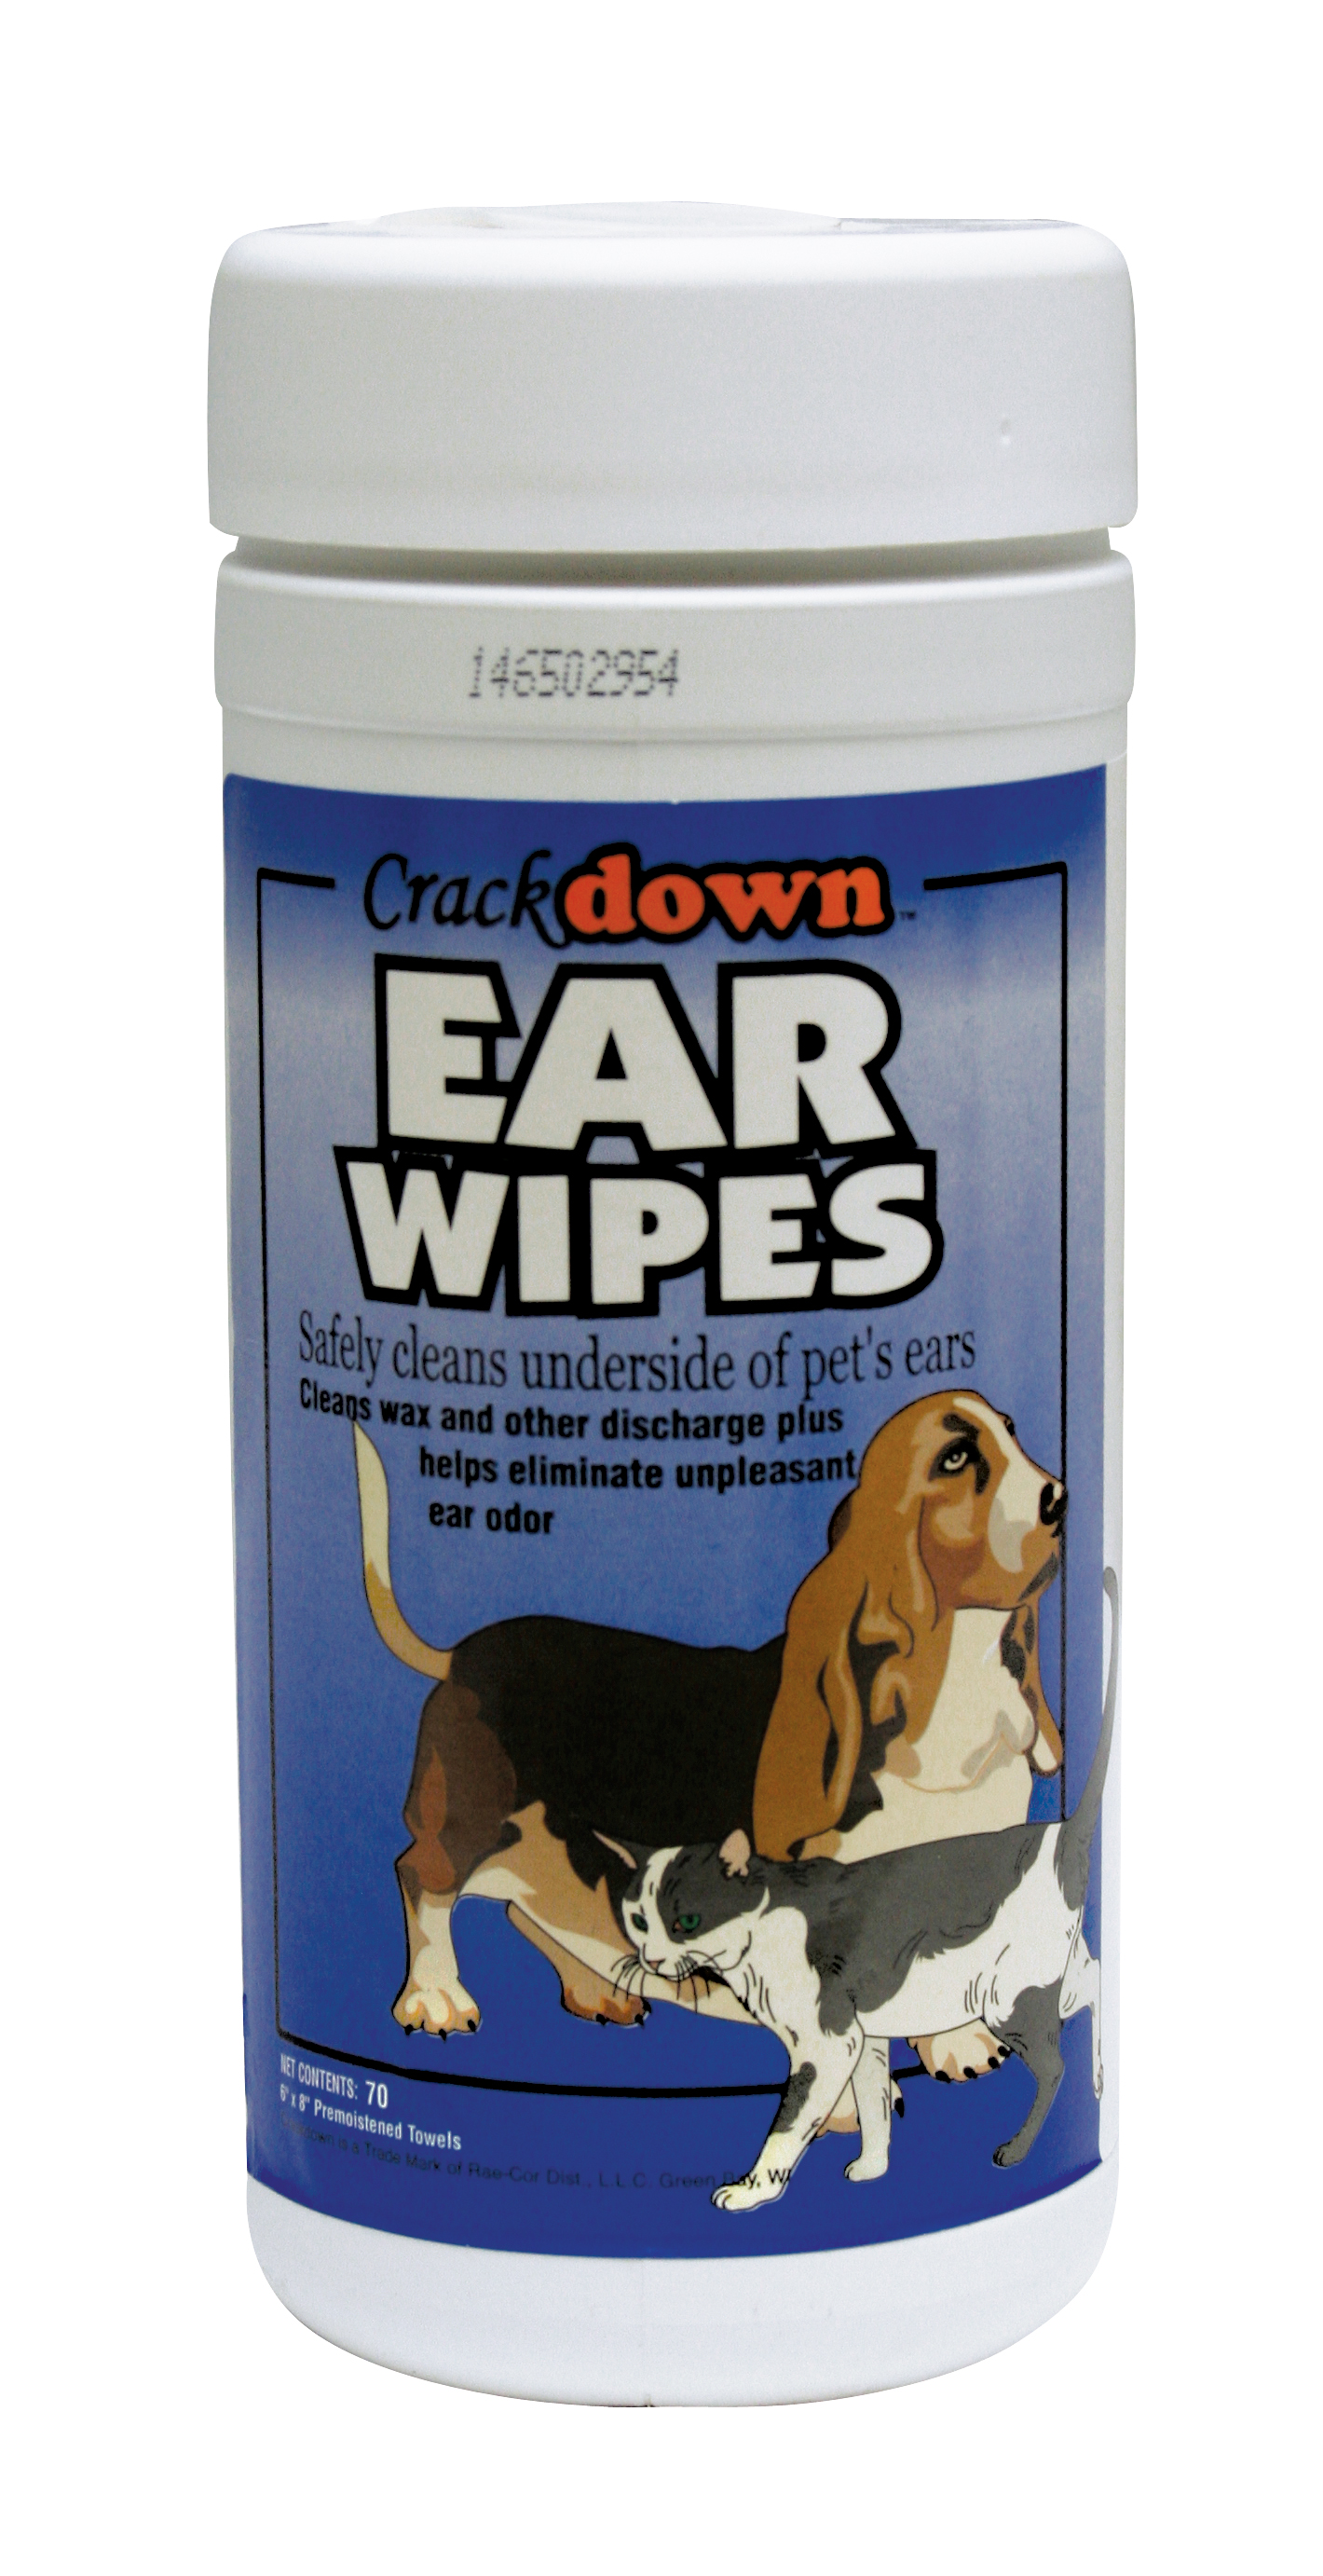 EAR WIPES - 70 COUNT CANISTER